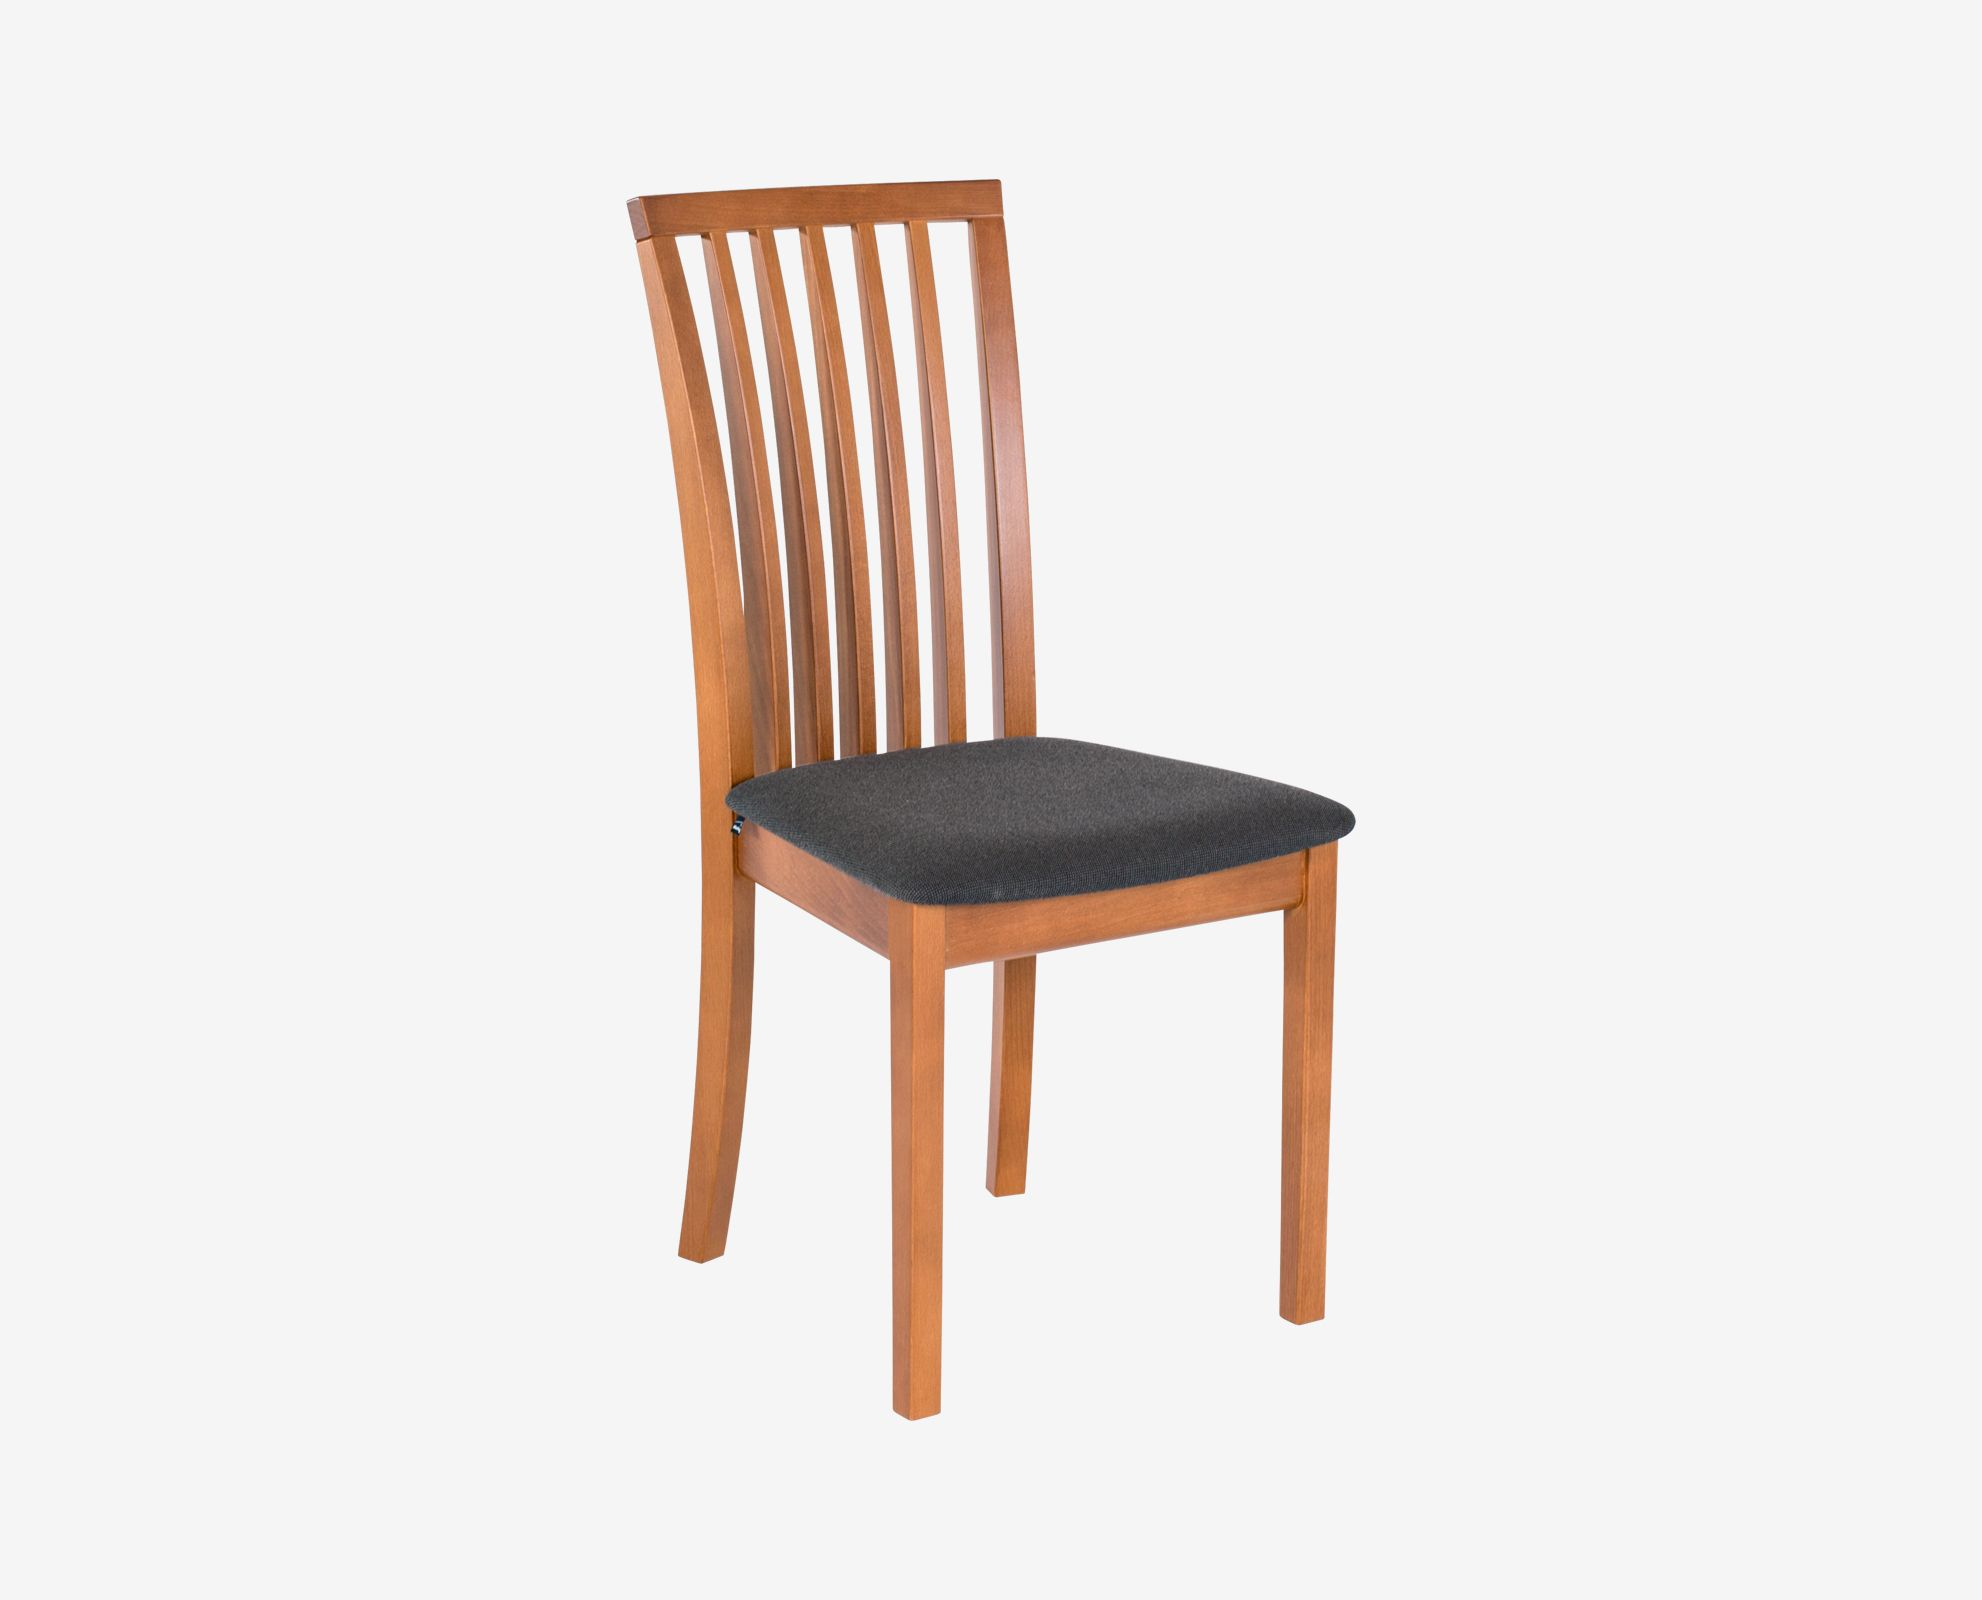 Dania   The Herning Dining Chair Is Built To Last With An Ergonomic Design  That Offers